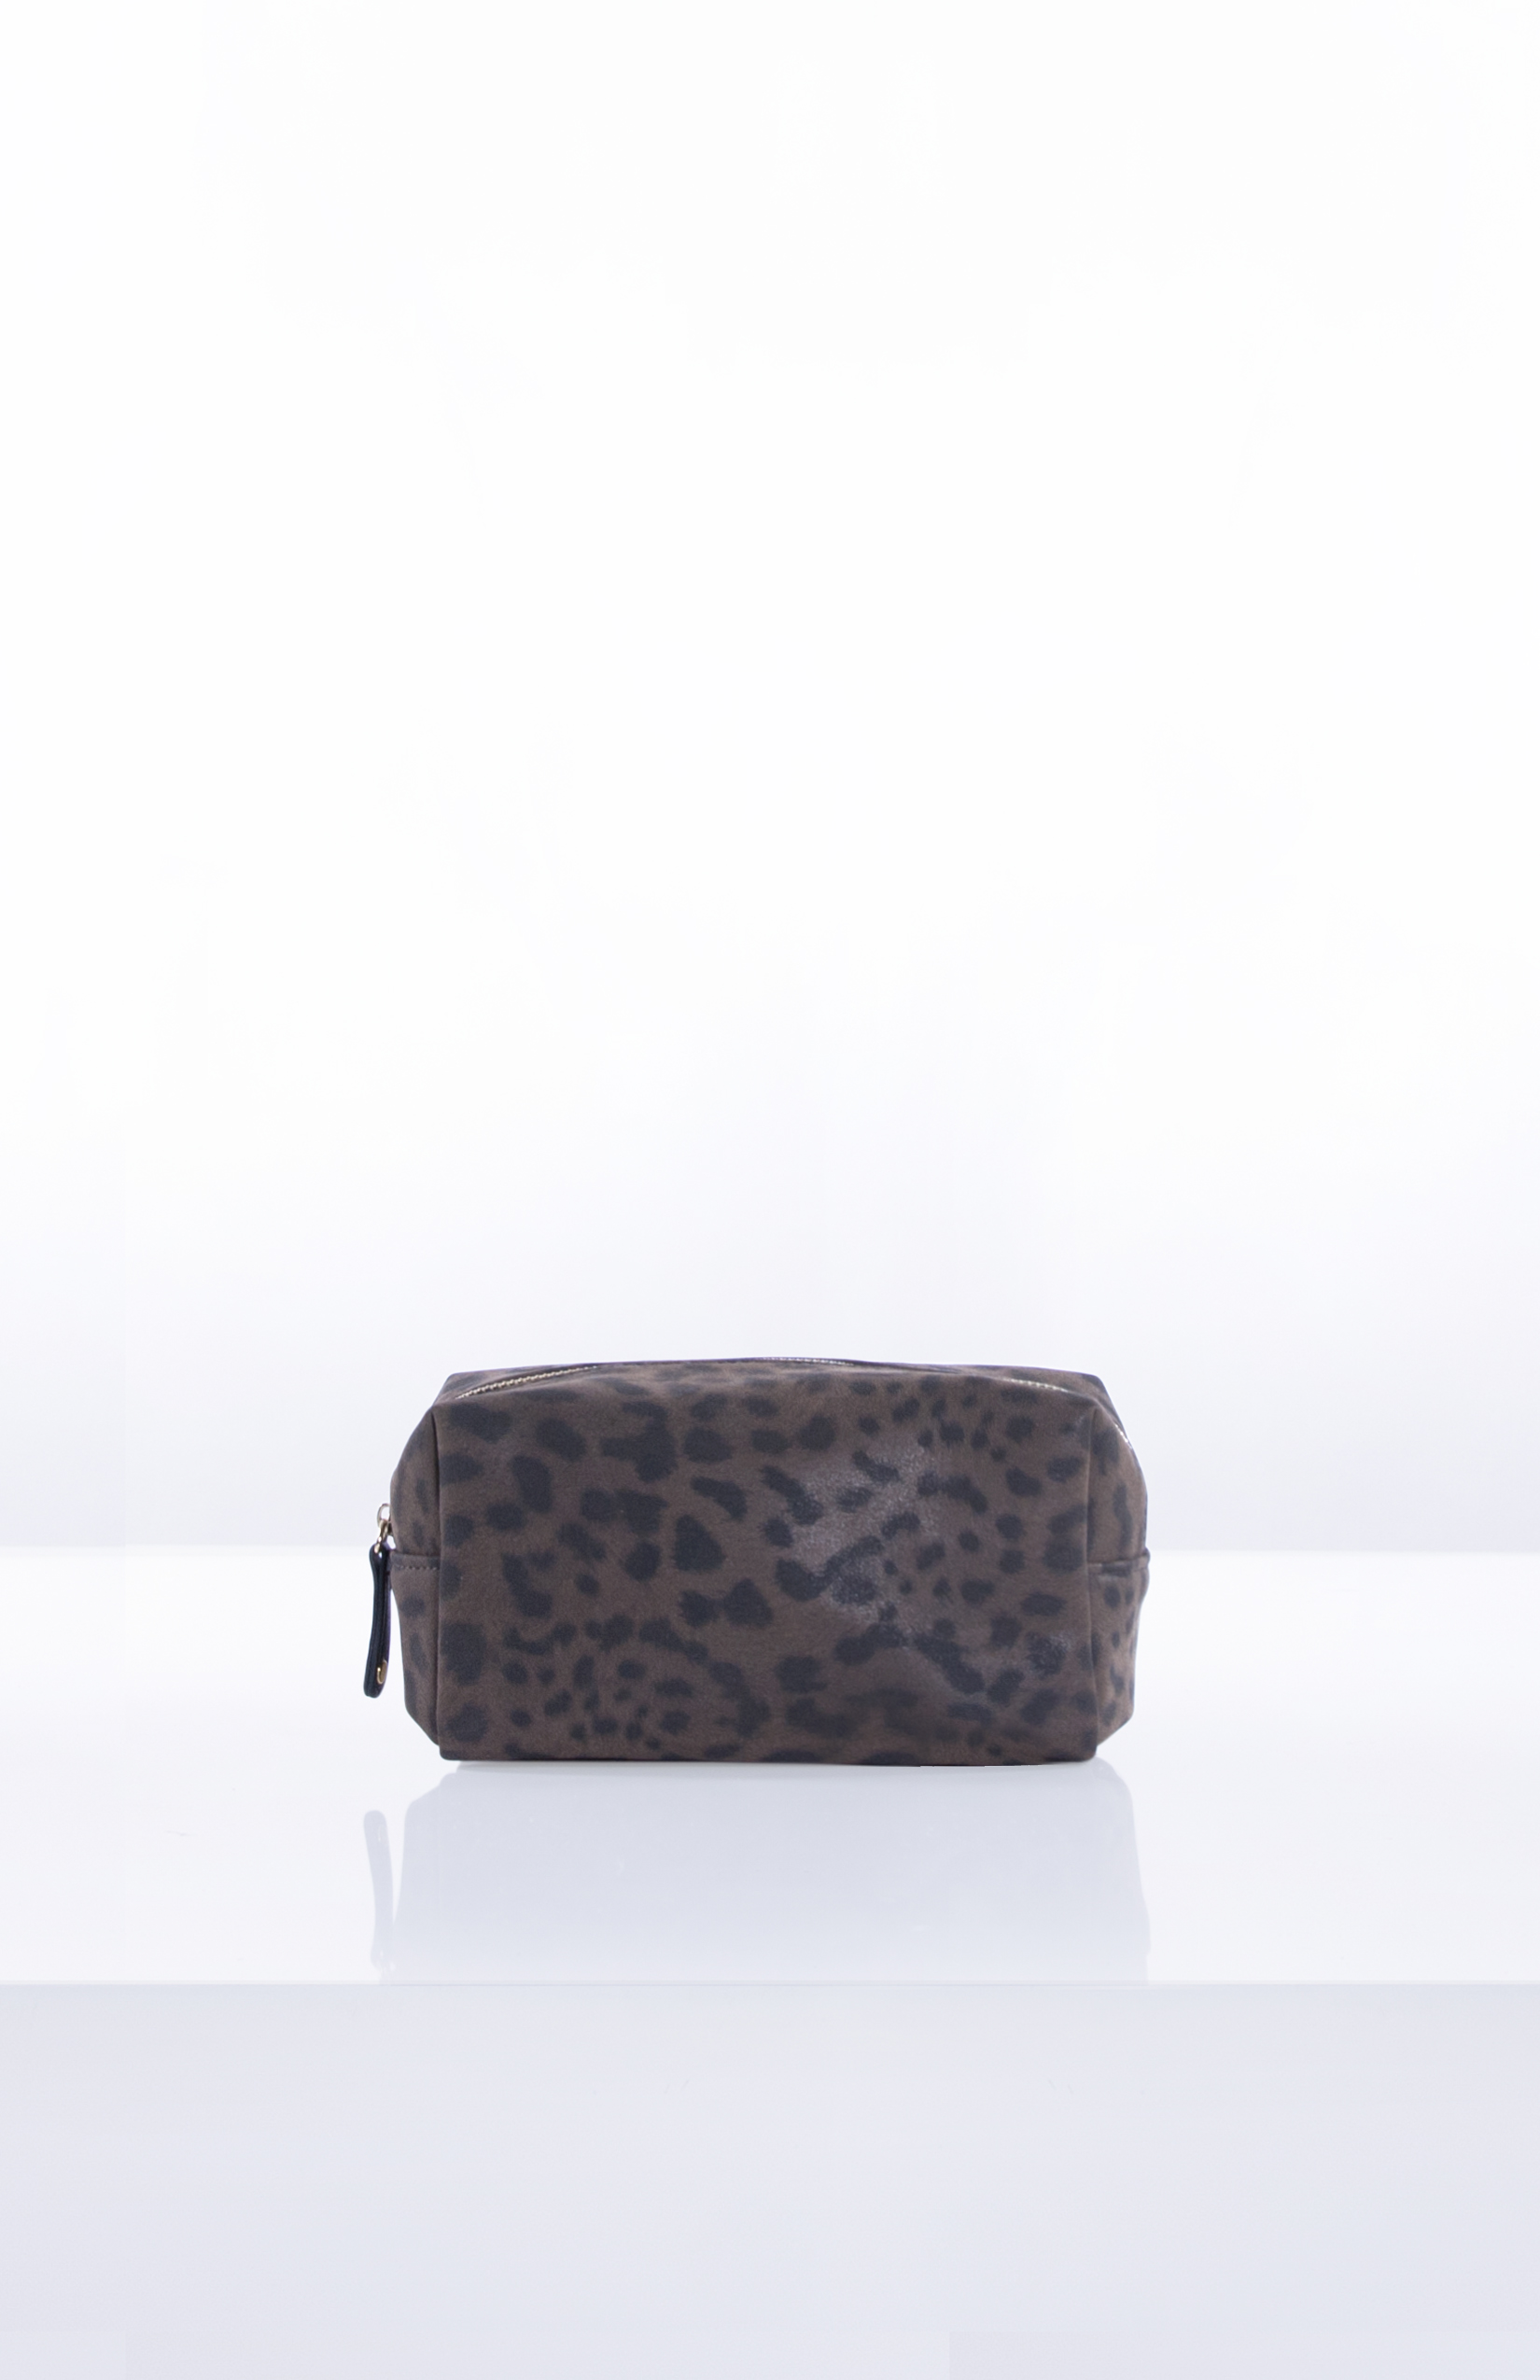 AVA- Brown Leopard